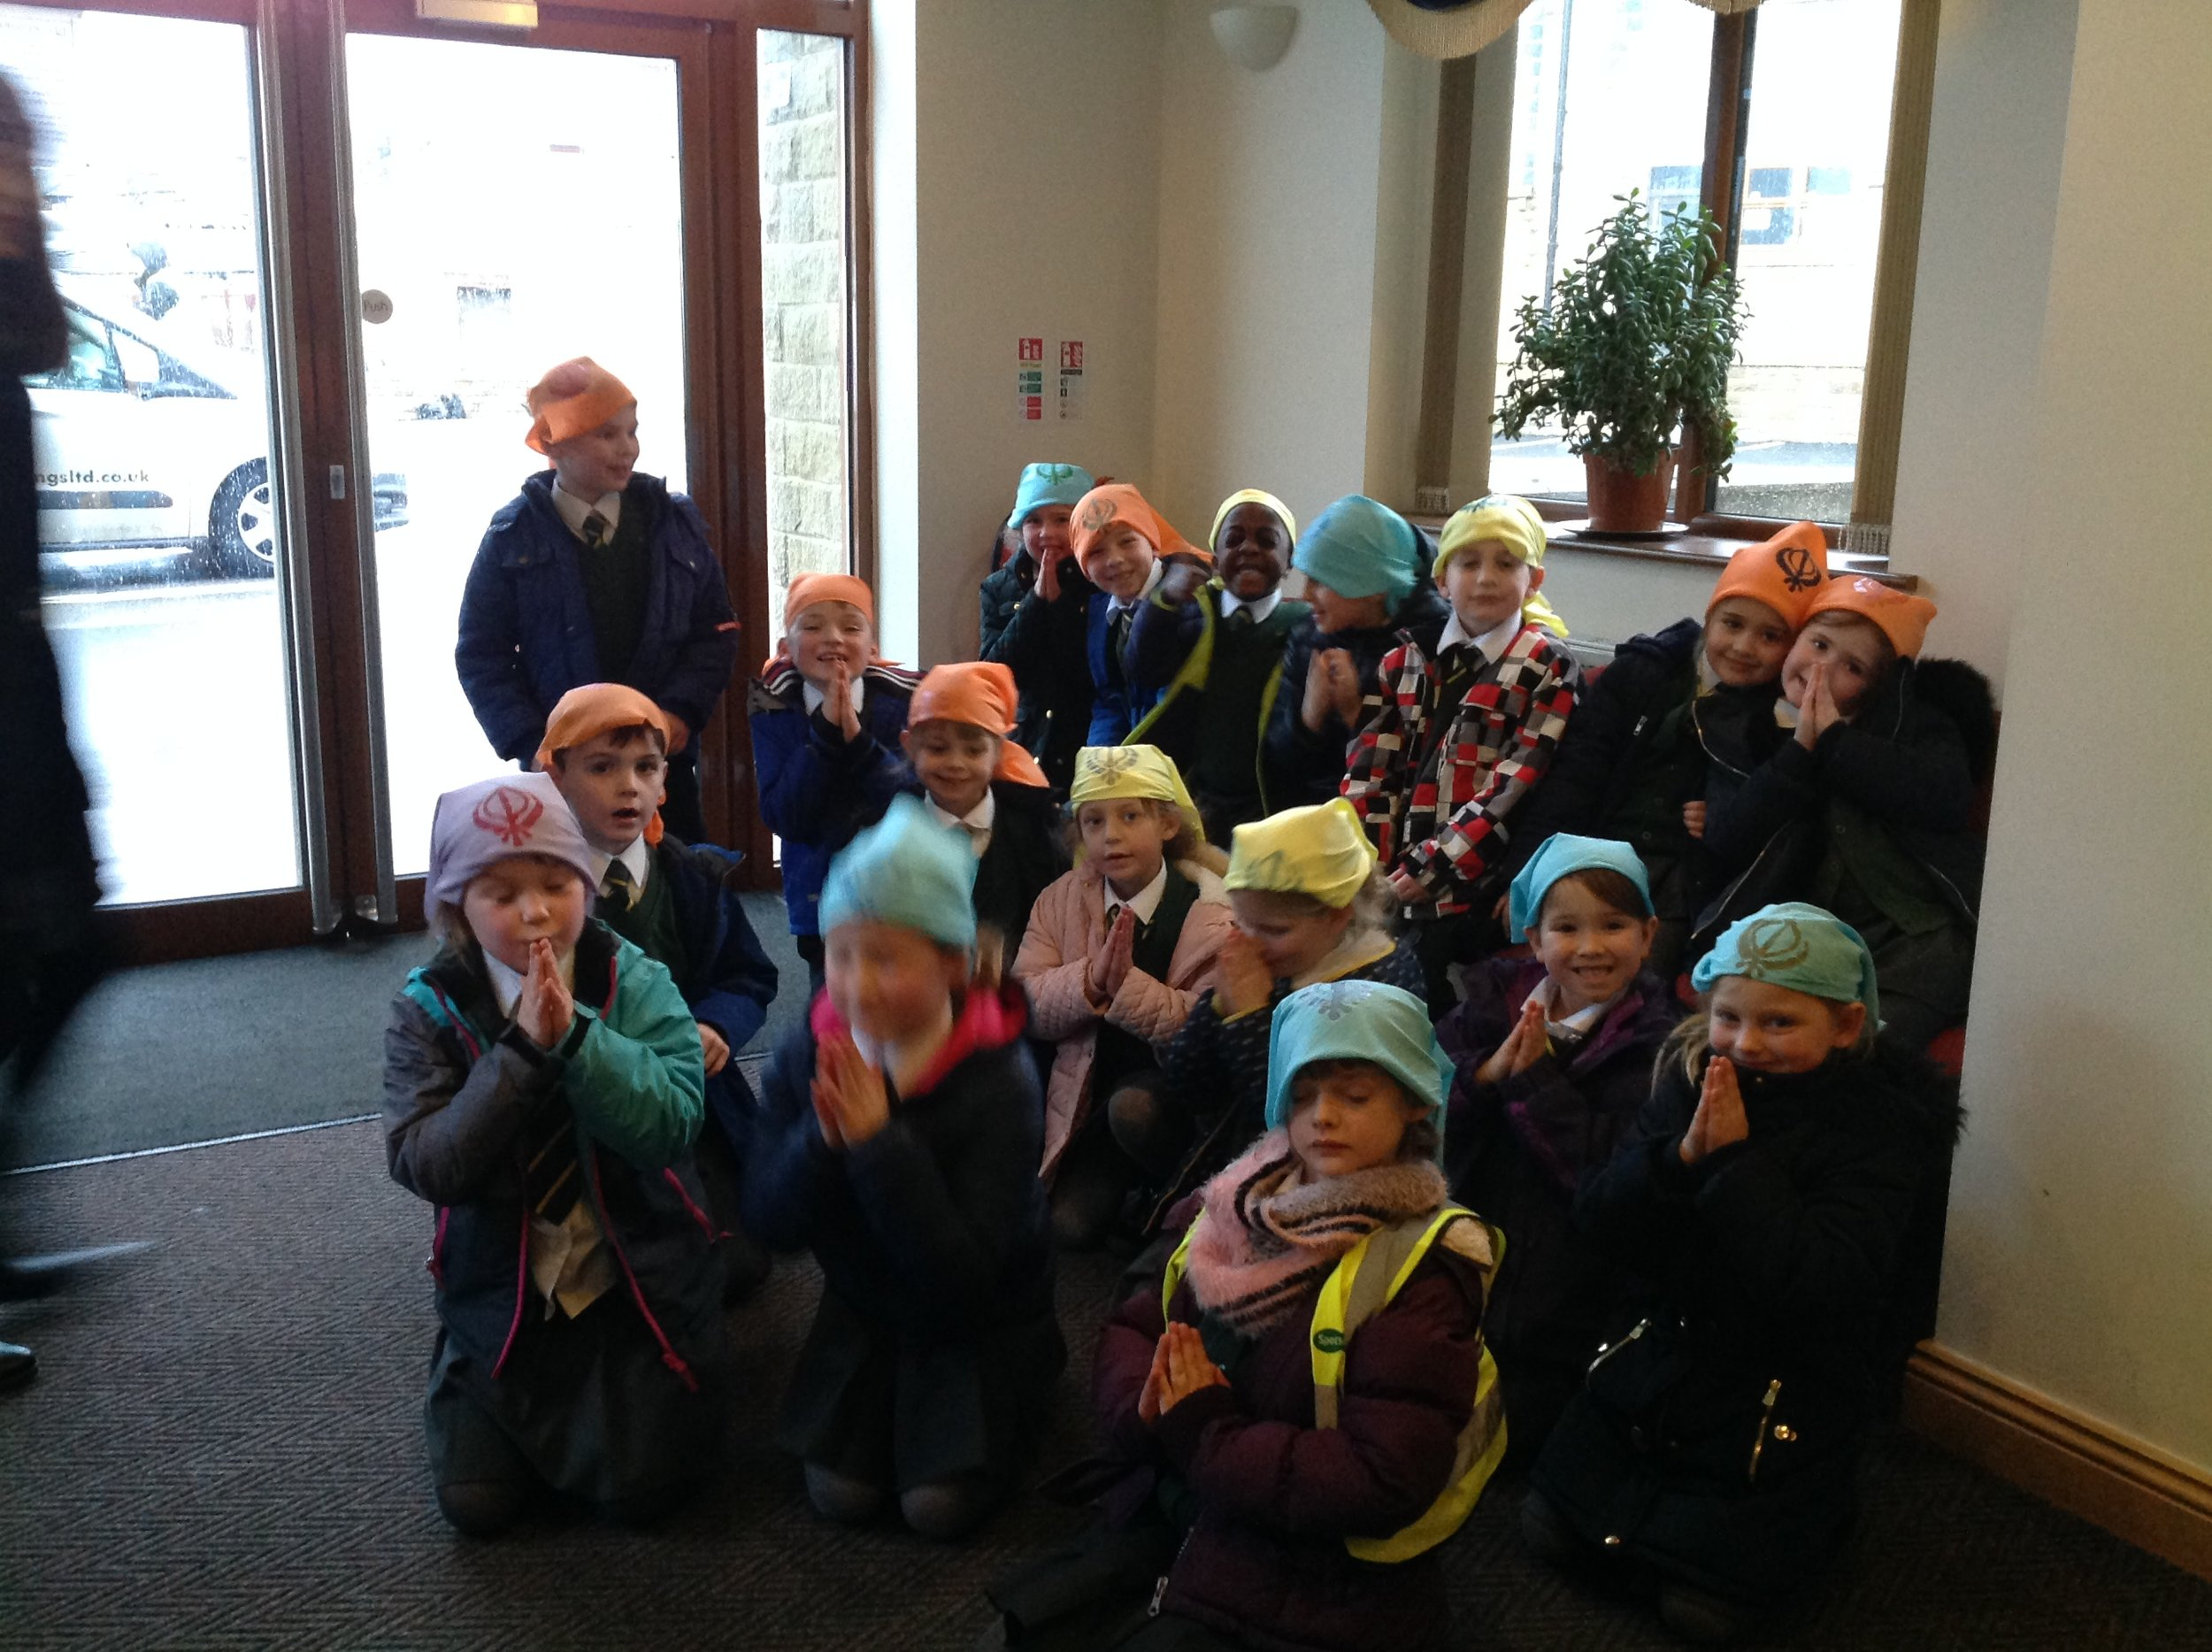 We covered our heads and took of our shoes. Mr Singh loved the scarves we had made at school.